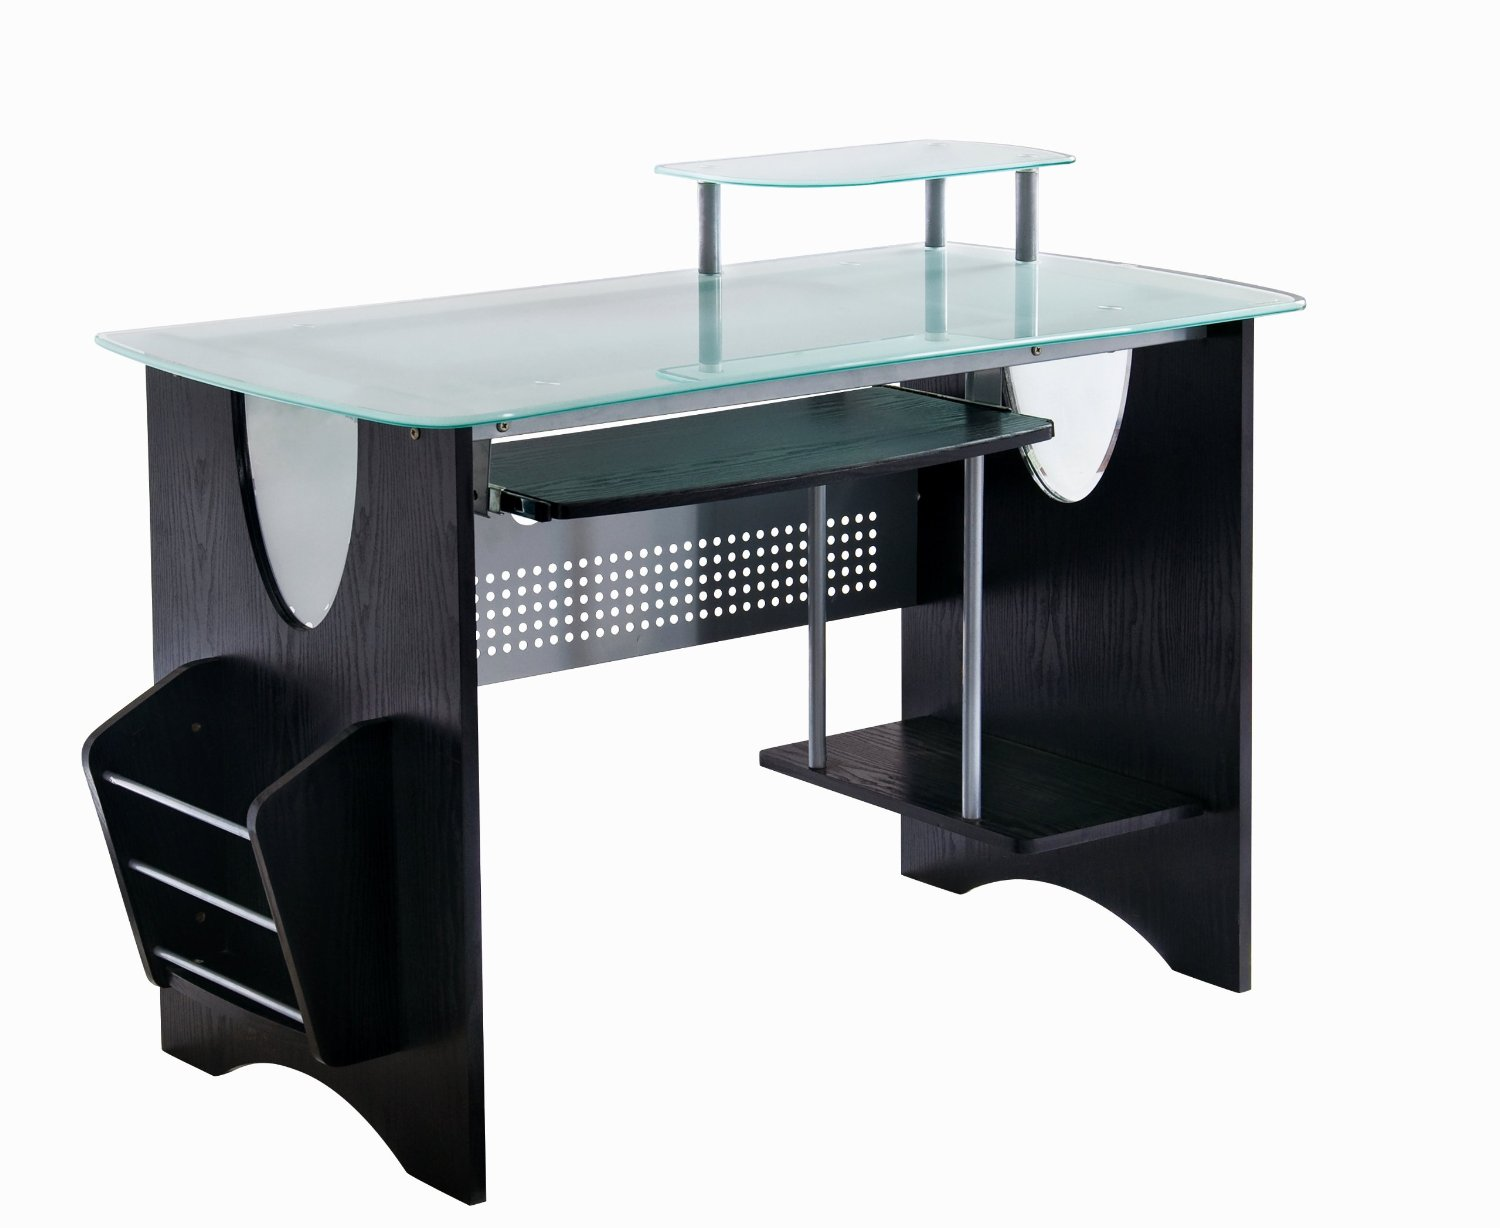 Cheap Modern Computer Desk In Elegant Wooden Design : Cheap Modern Computer Desk Black Color Ideas